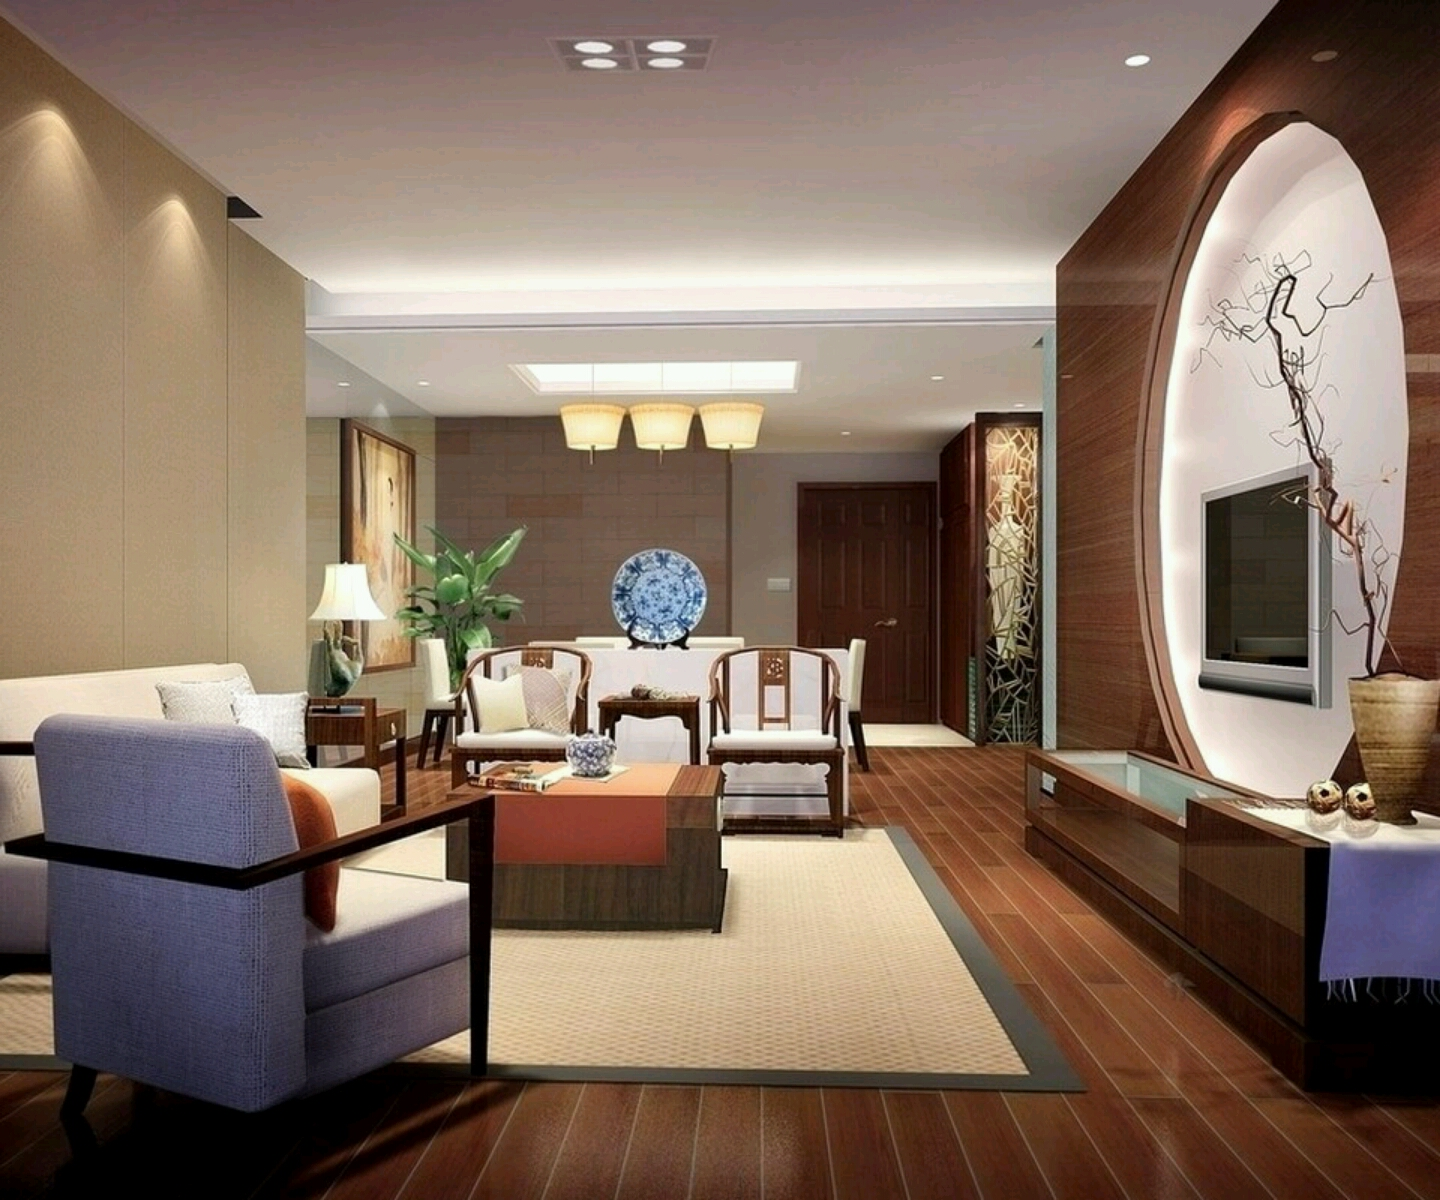 Luxury homes interior decoration living room designs ideas for Decorator living room ideas